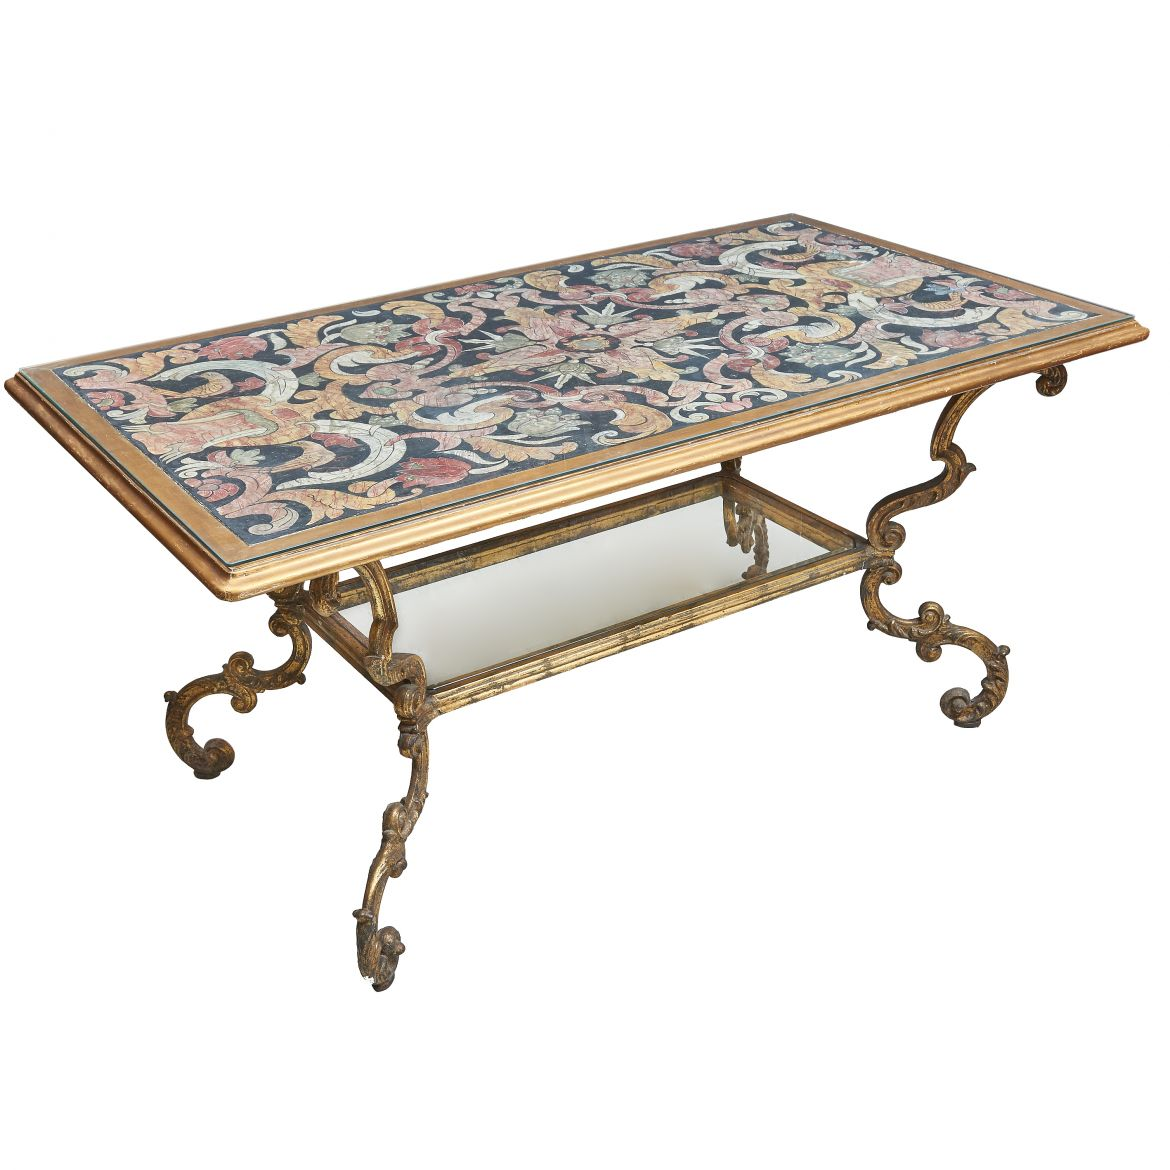 Italian Faux Scagliola Top Table